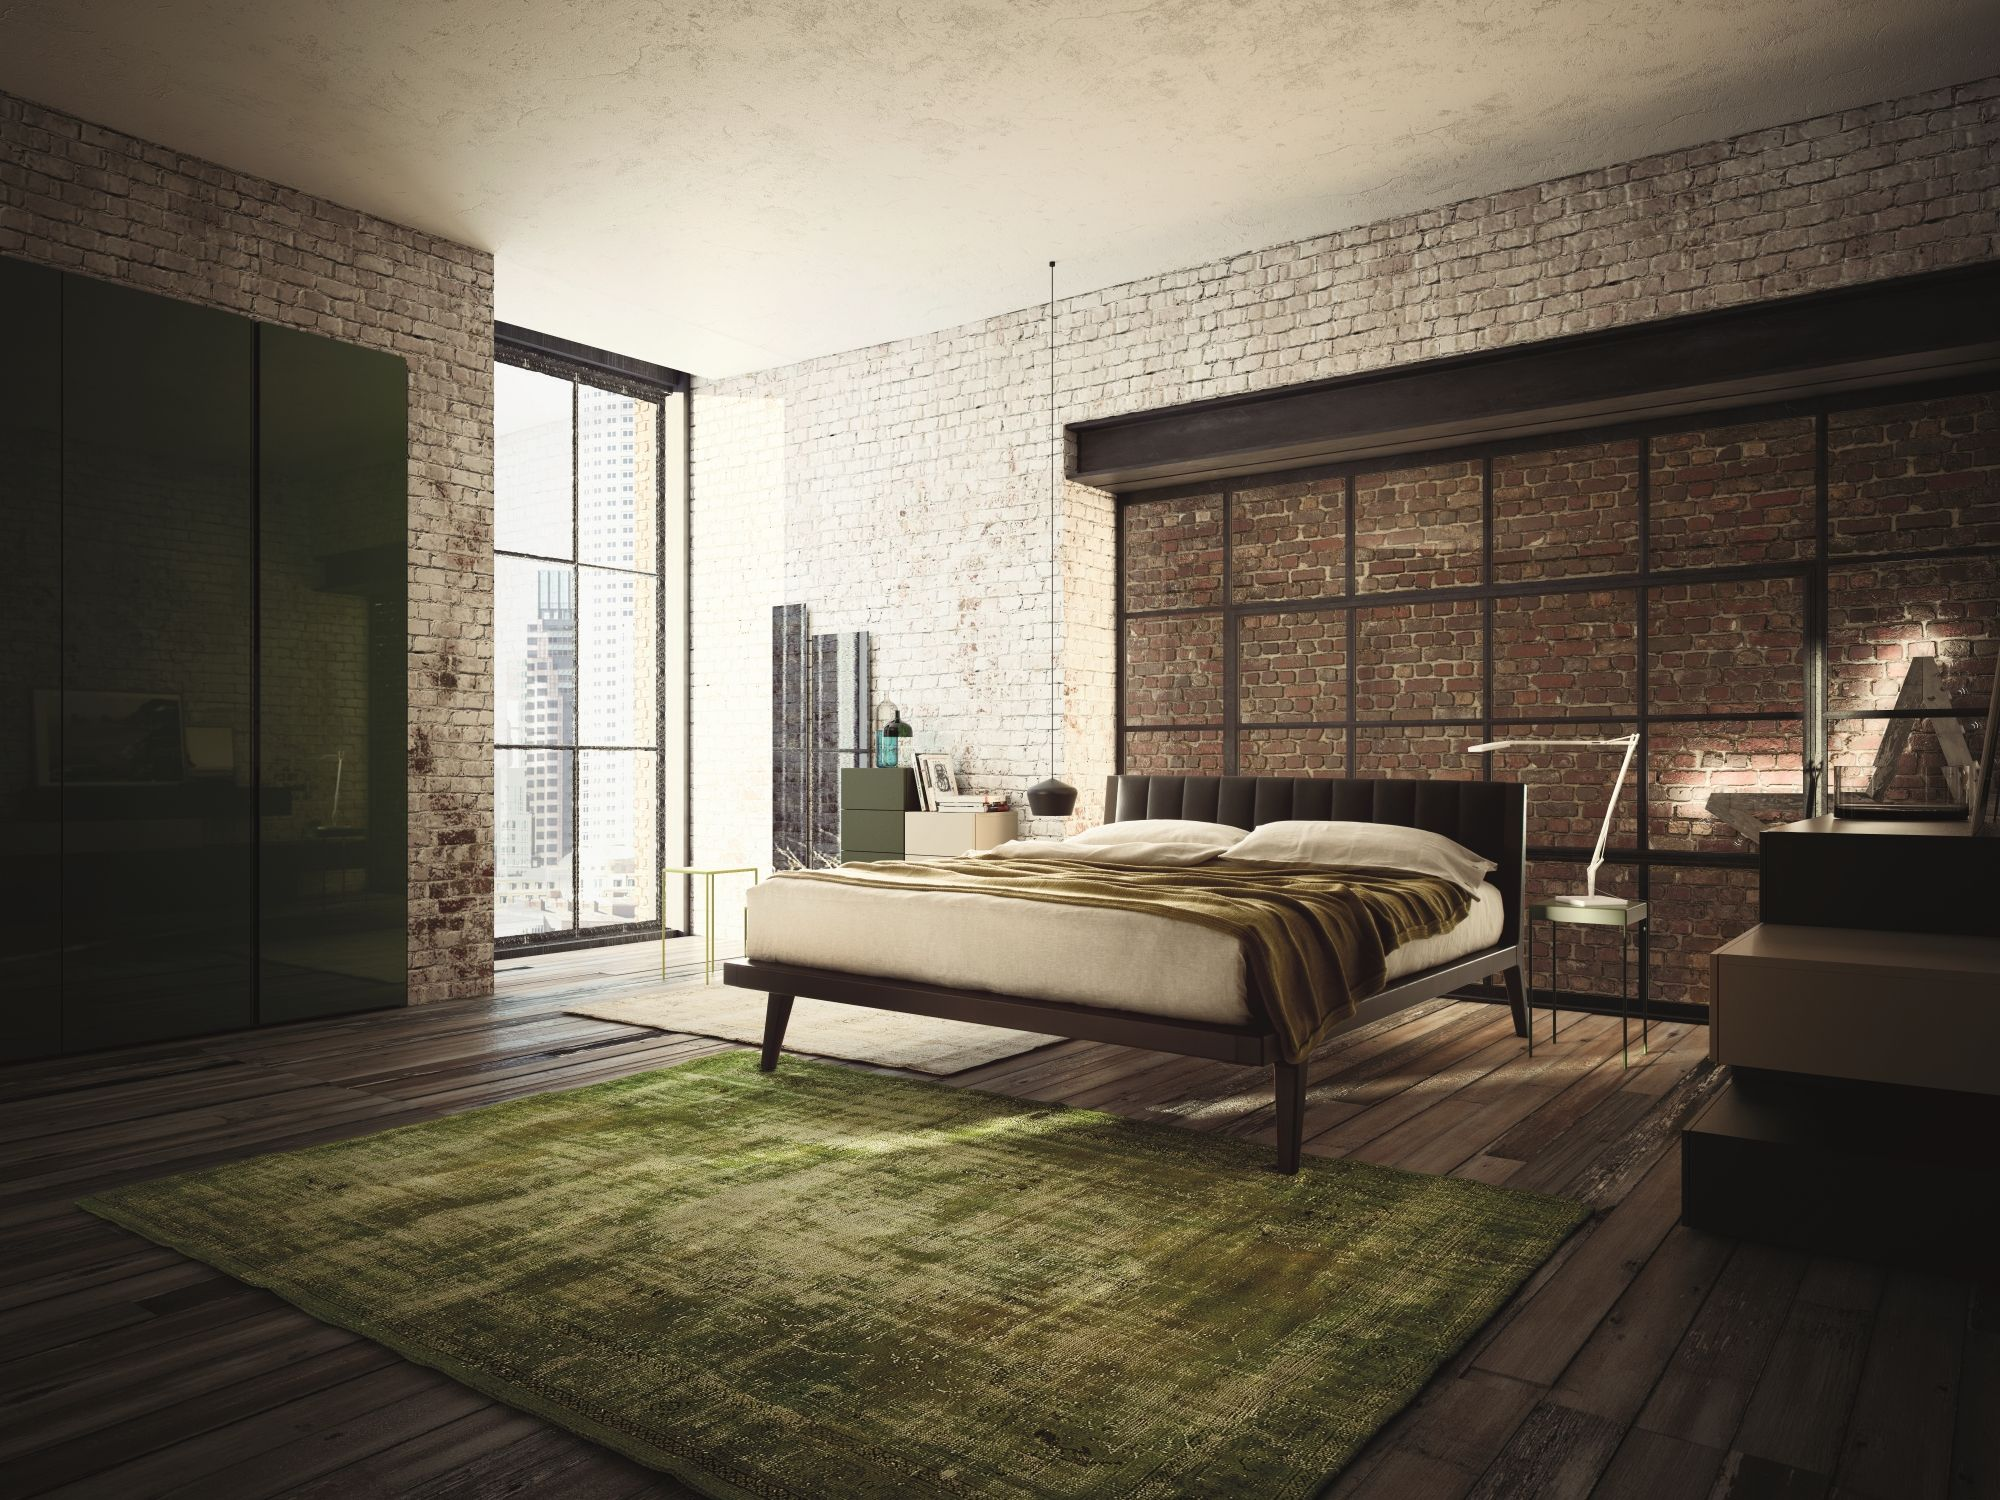 Industrial Interior Design Bedroom 8Emezzo's Light And Spacious Style With The City Bed  Home Pics I